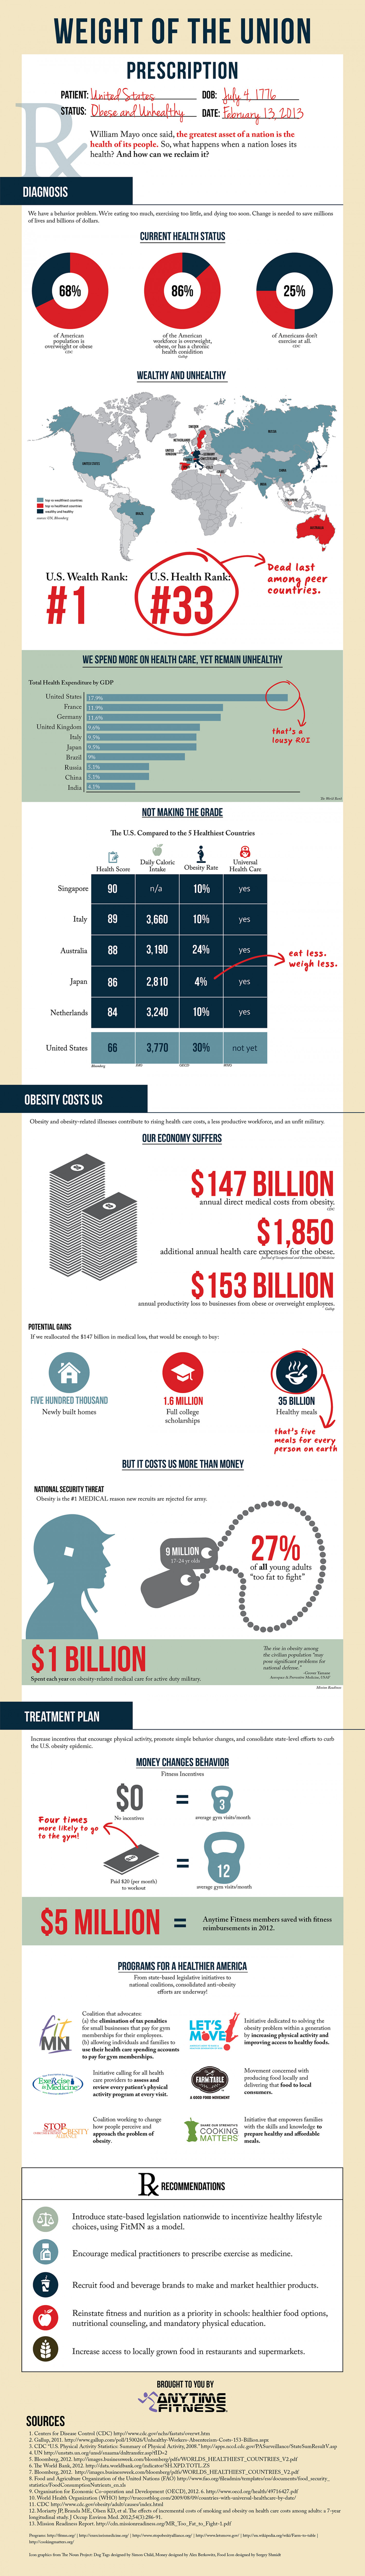 Weight of the Union 2013 Infographic